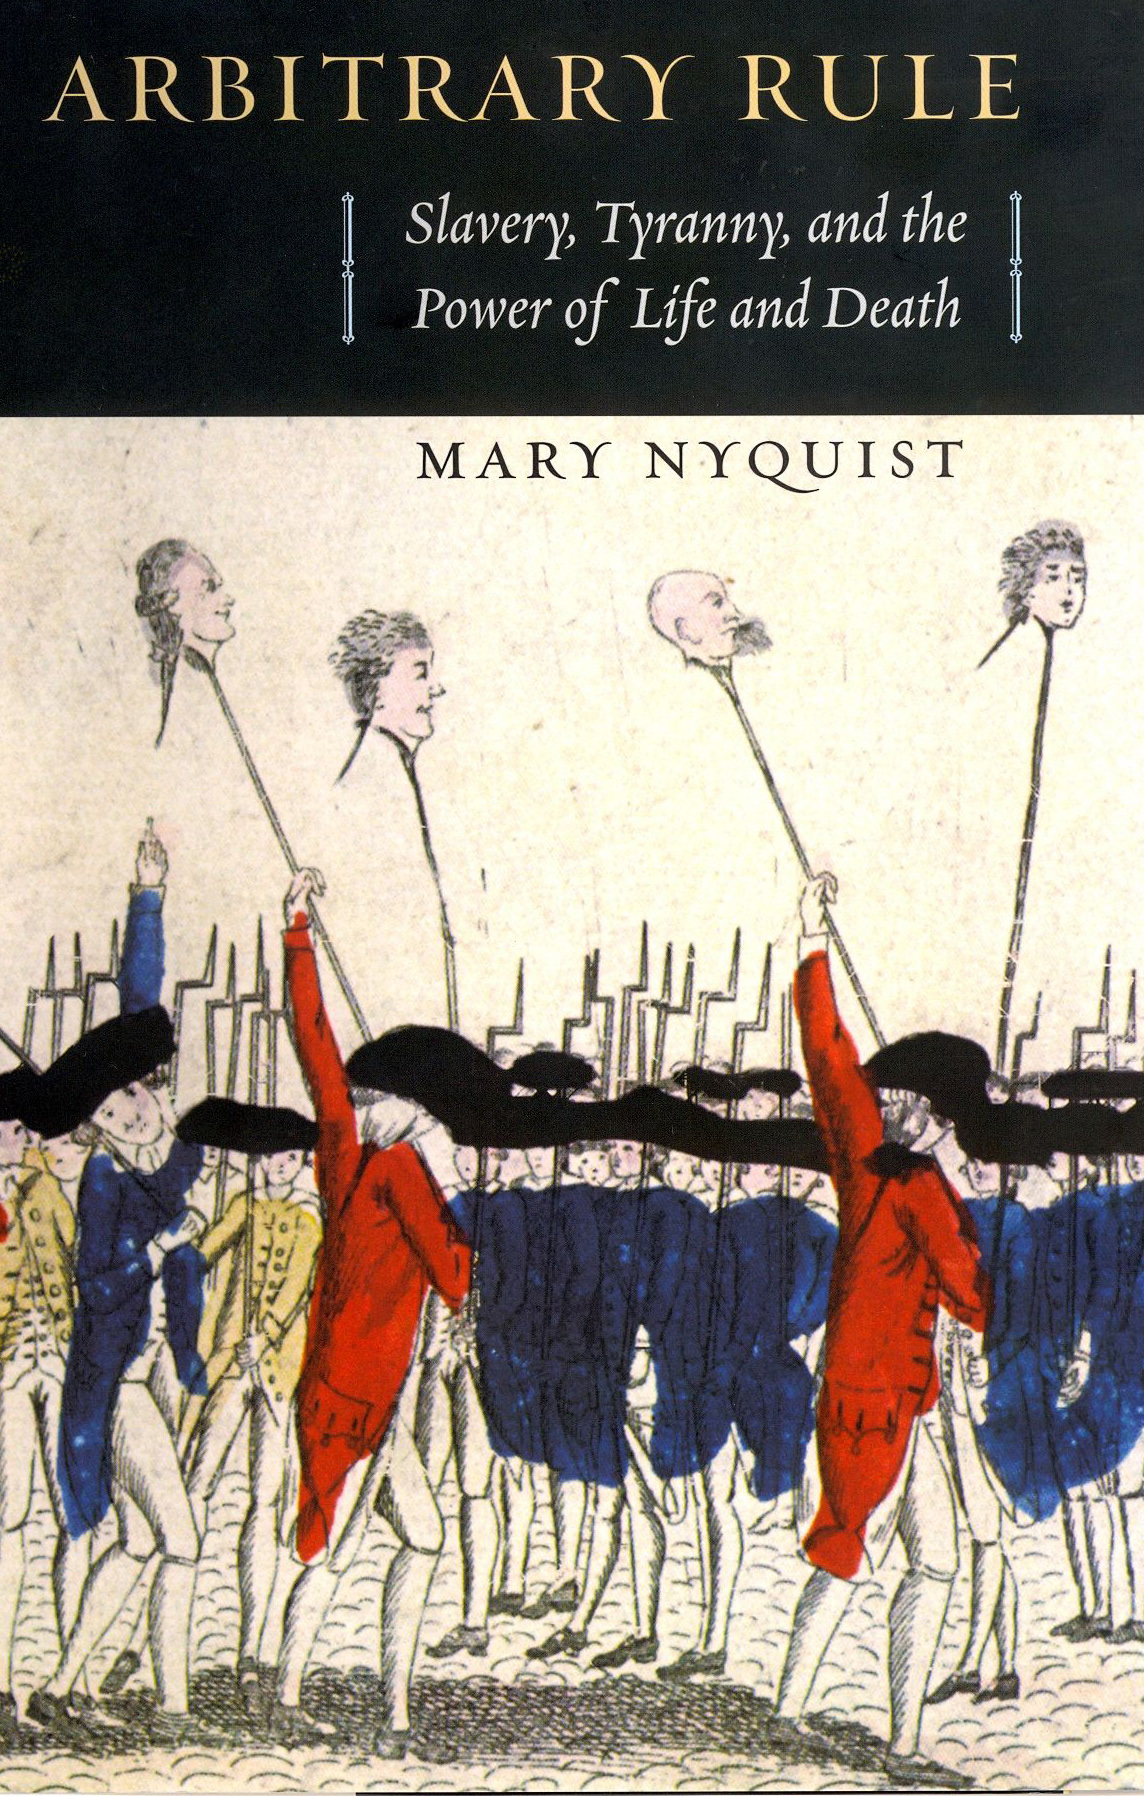 Mary Nyquist's book cover smaller